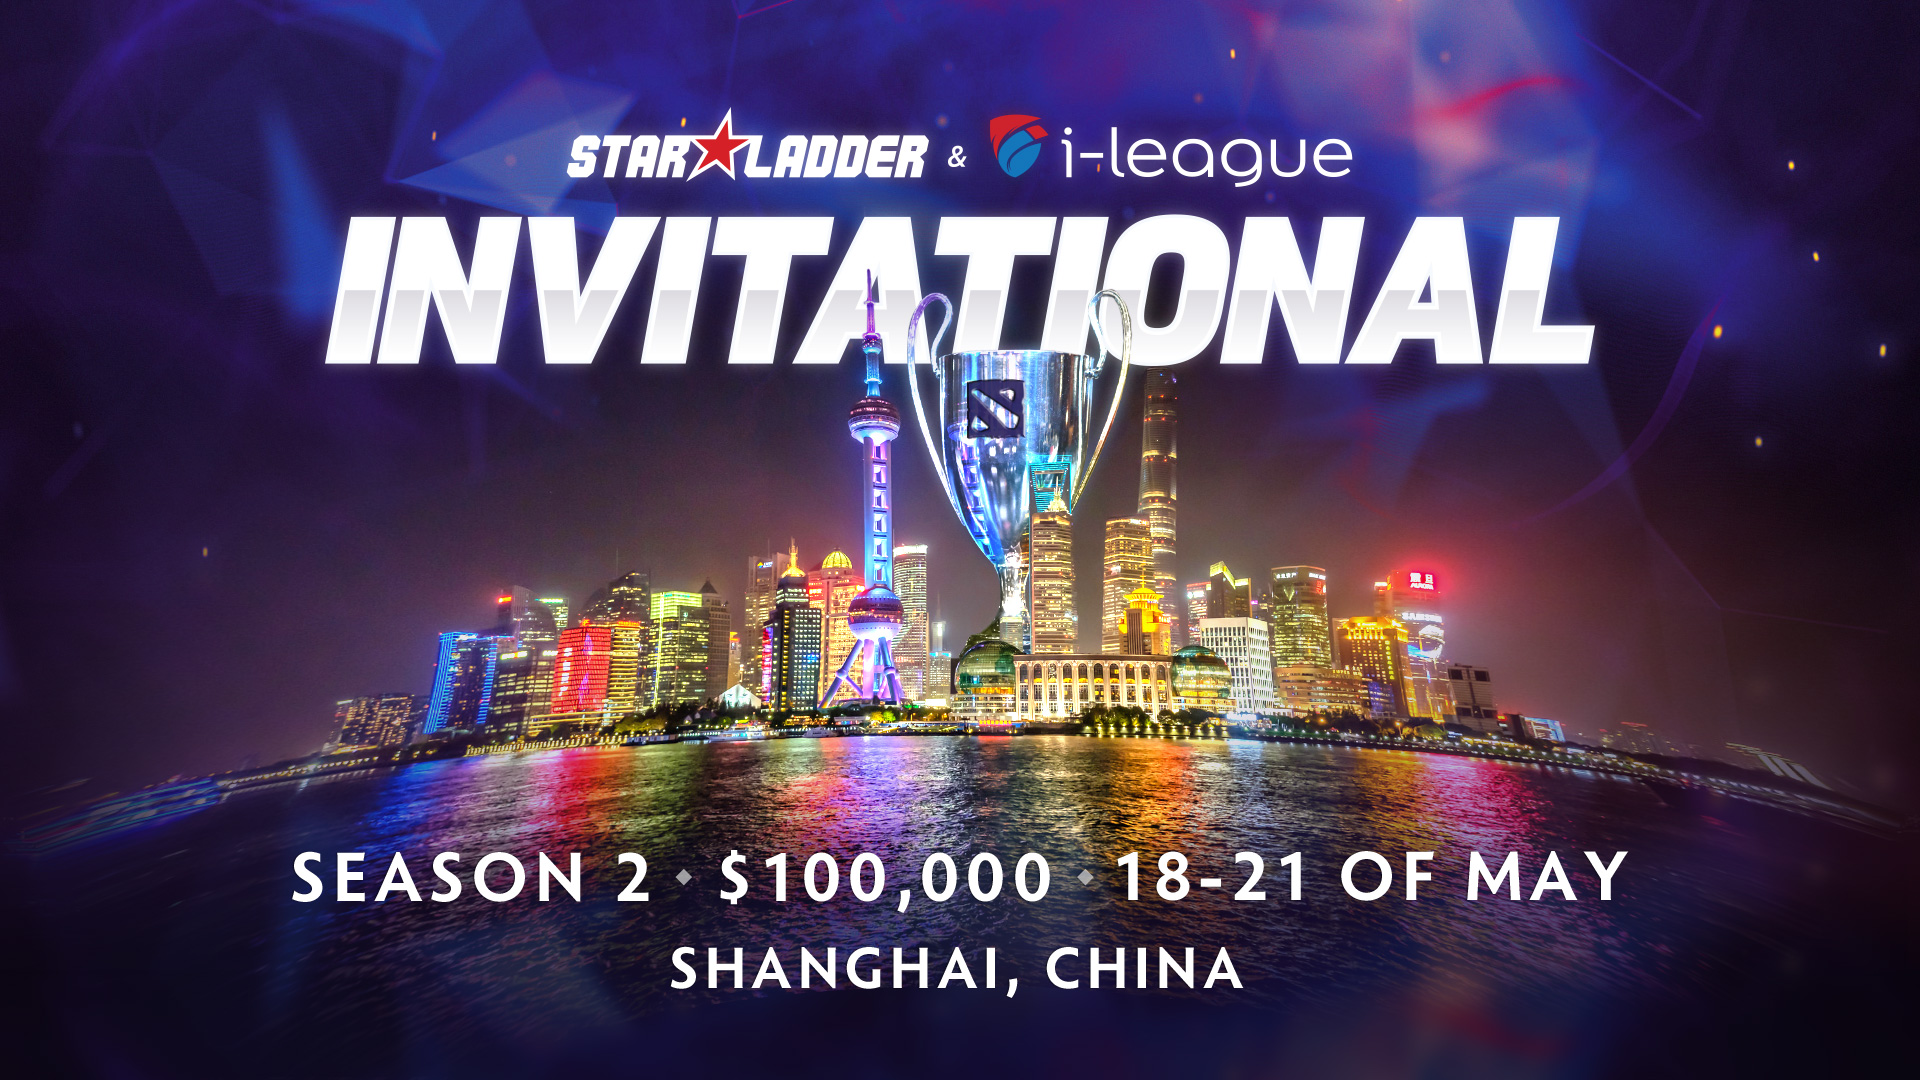 SL i-League Dota 2 Invitational Season 2